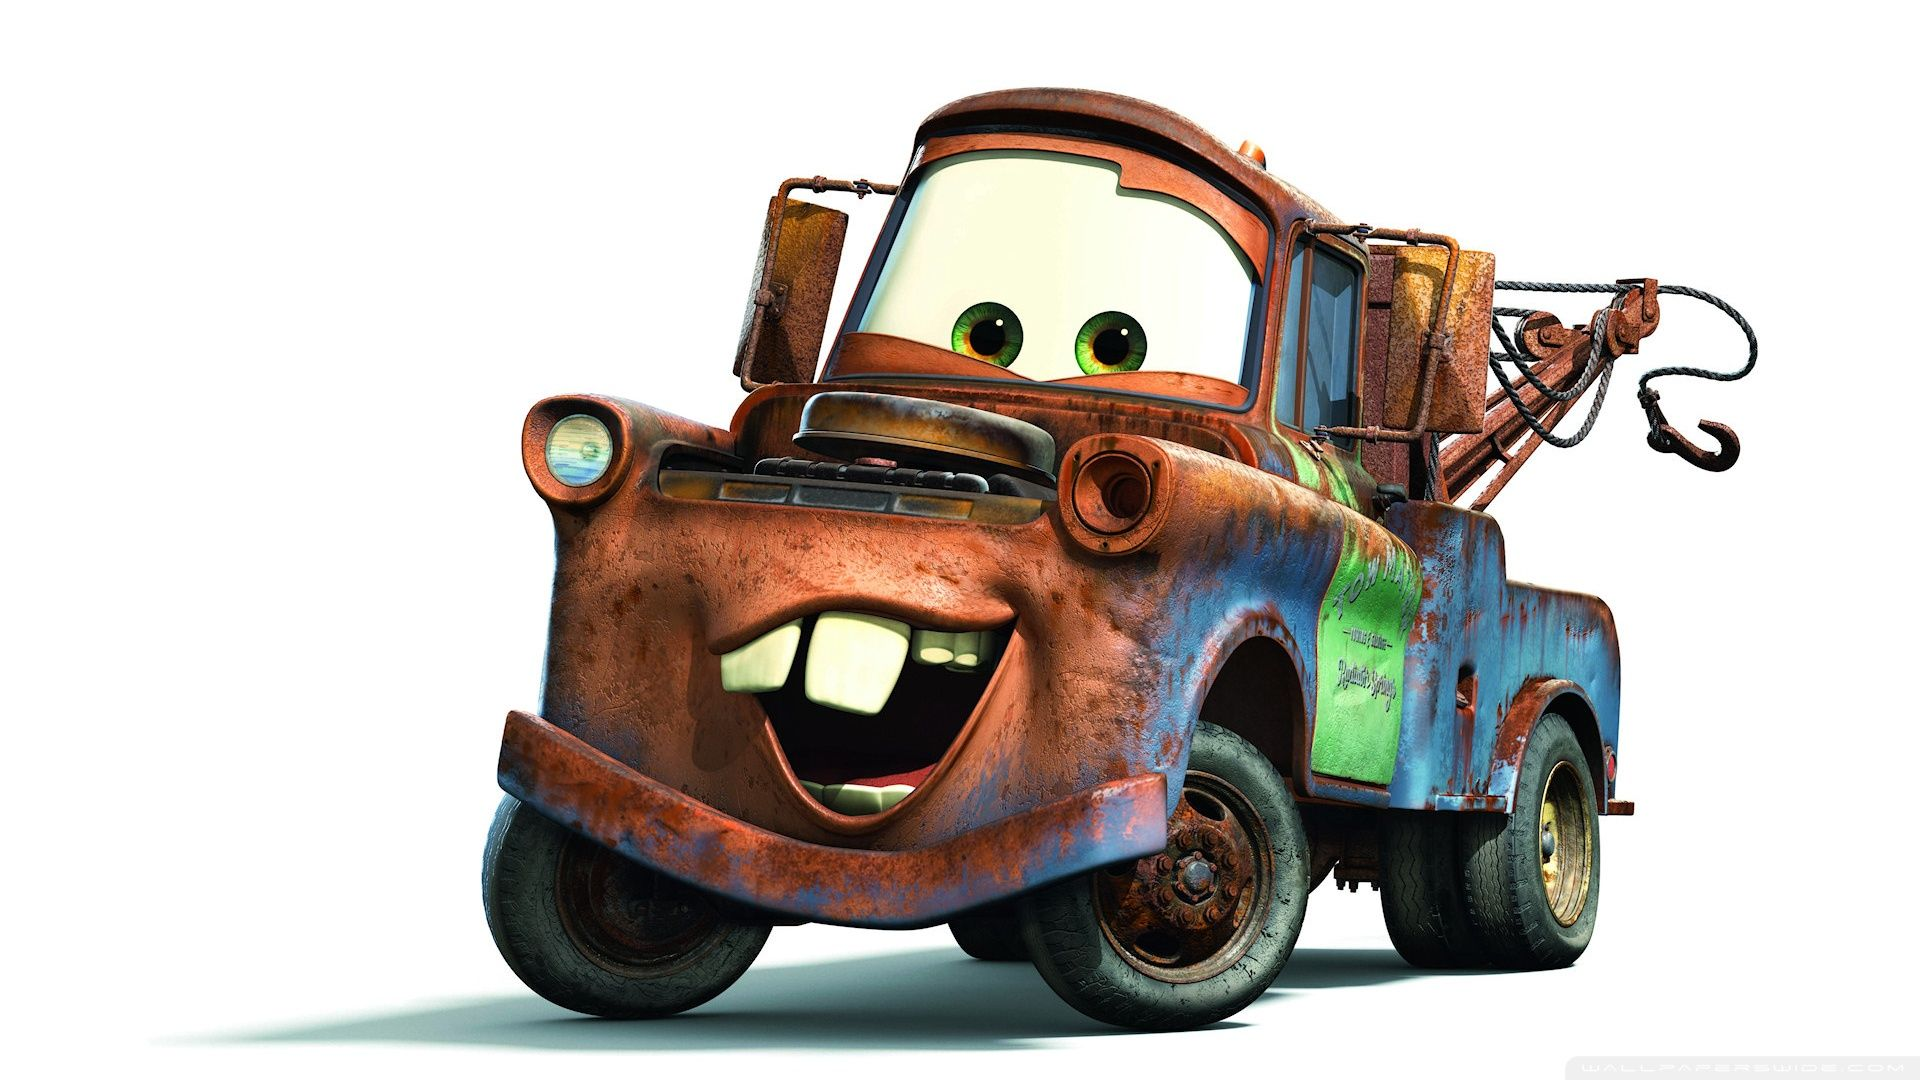 Cars Movie Tow Mater Hd Widescreen High 463742 Jpg 1920 1080 Mater Cars Cars Movie Cars Characters